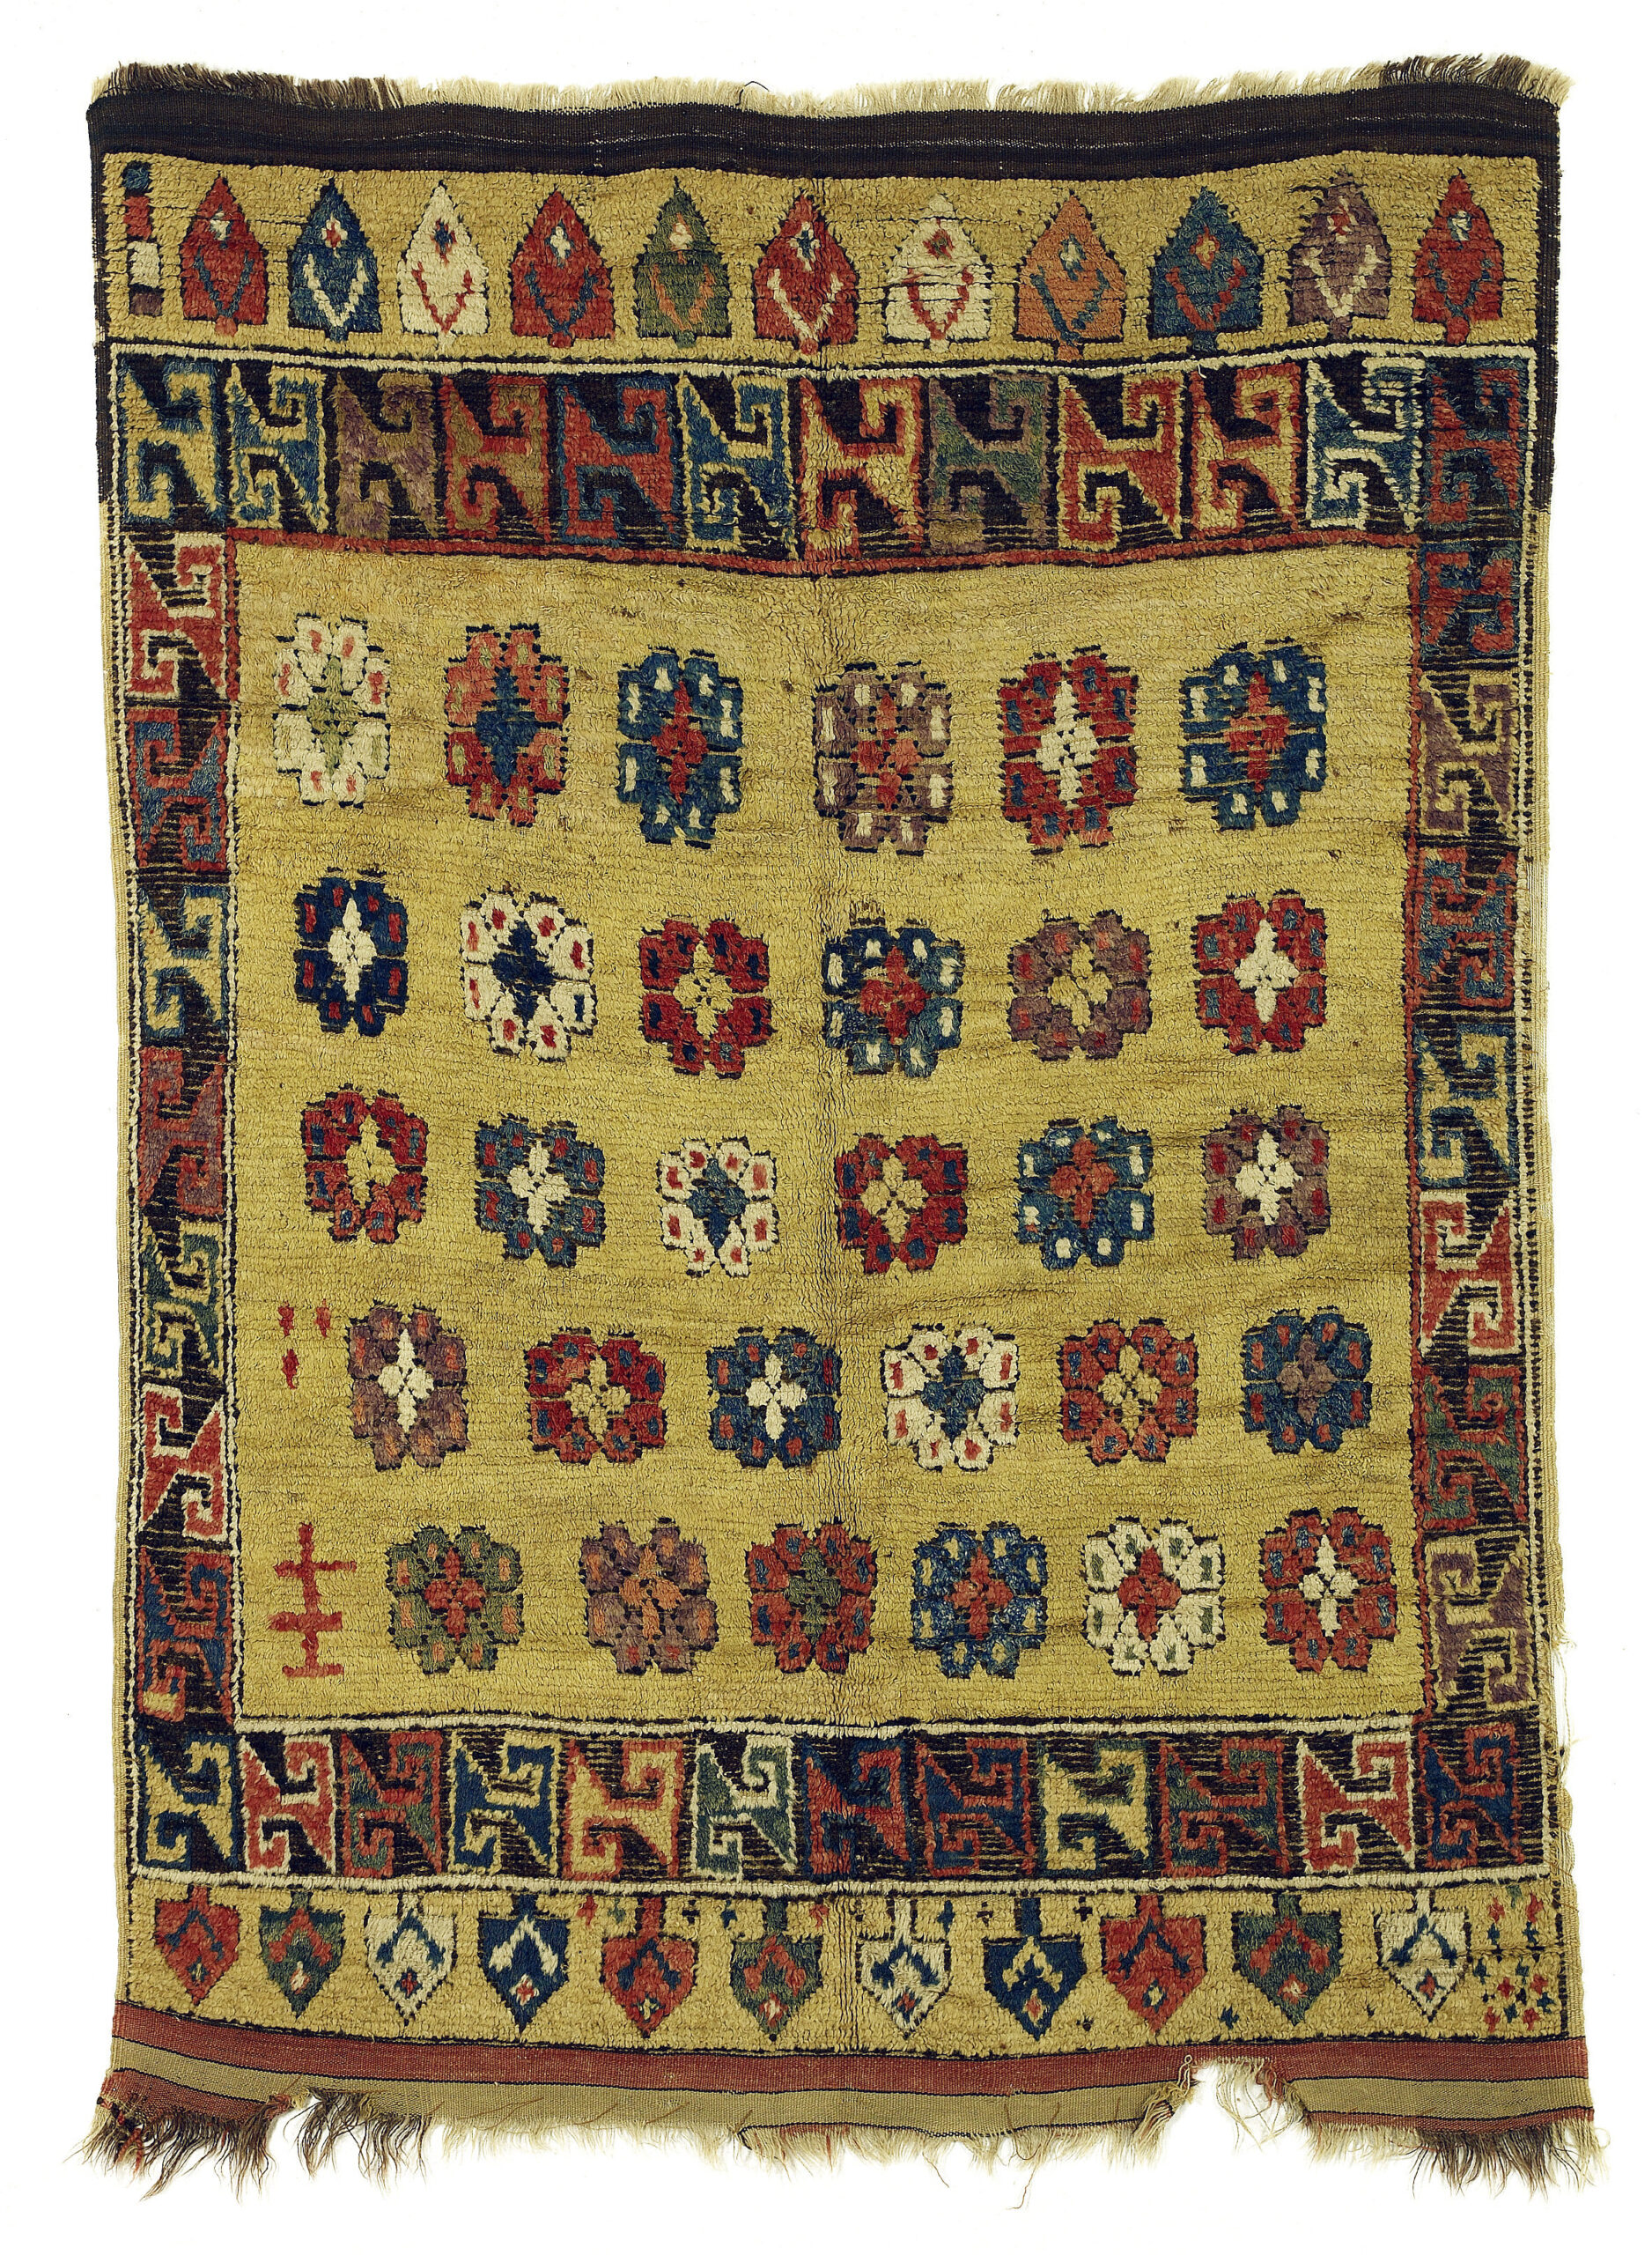 18th century yellow ground rug from Cappadocia, Central Turkey